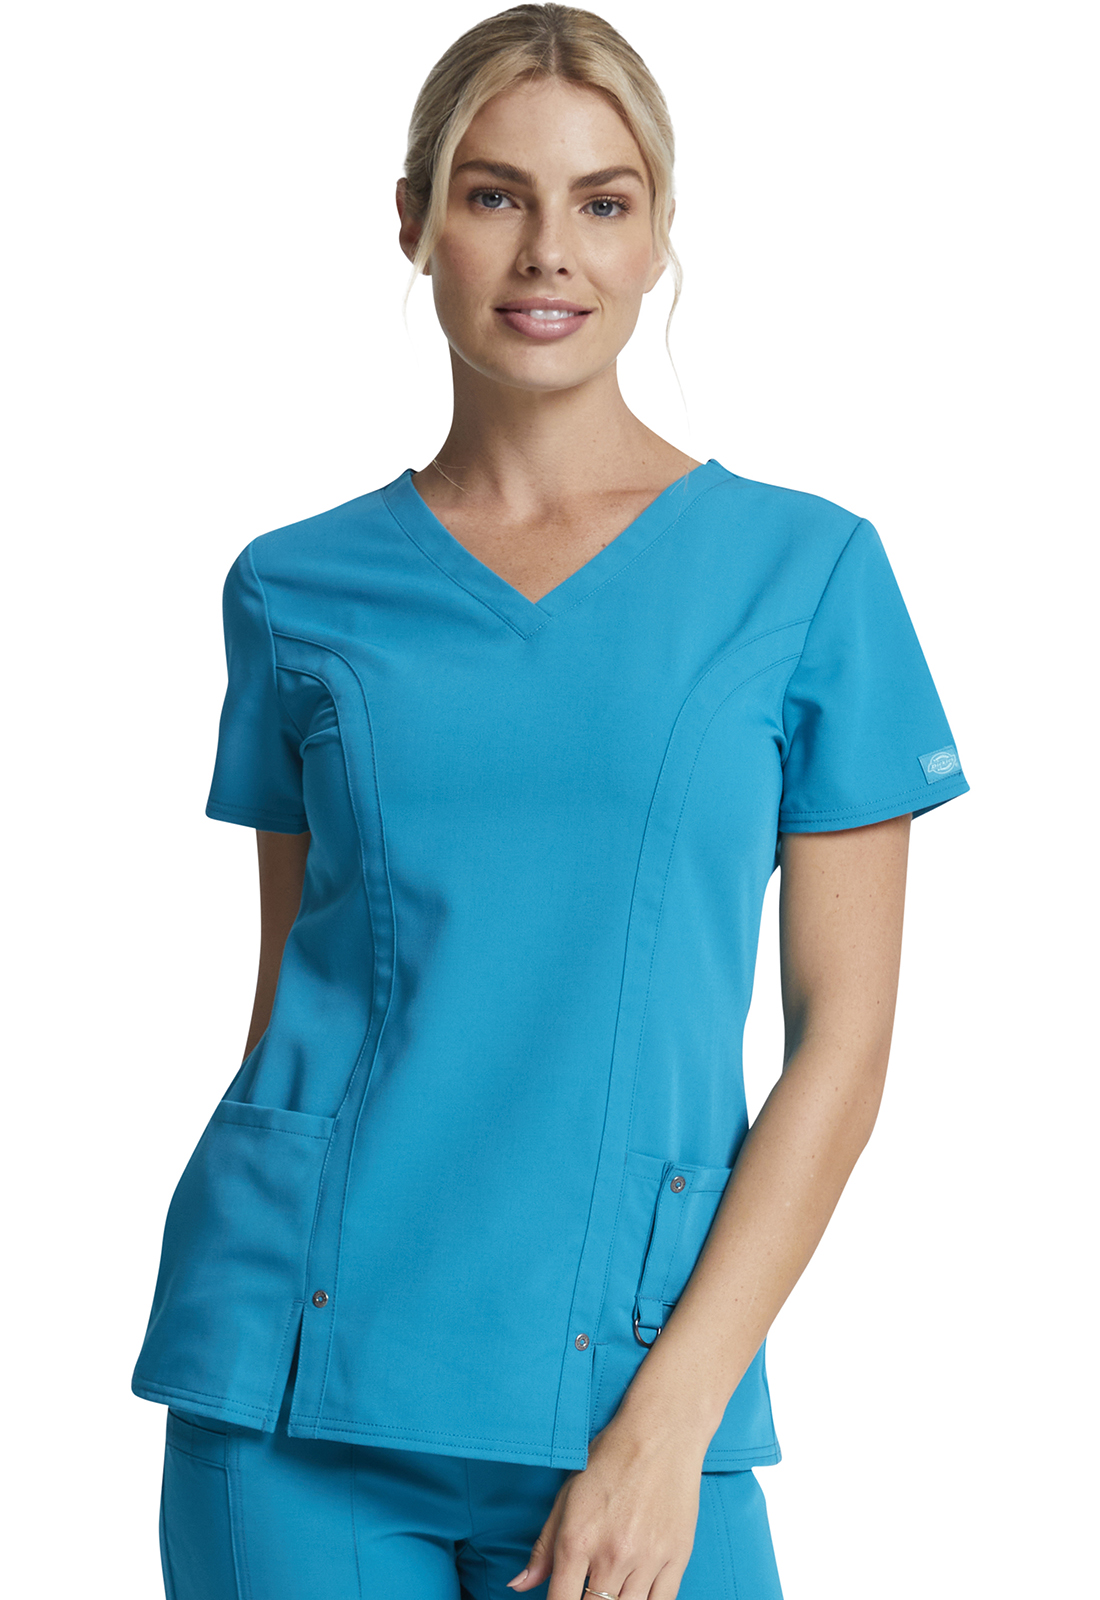 bd89e50987d Dickies Xtreme Stretch V-Neck Top in Teal from Dickies Medical